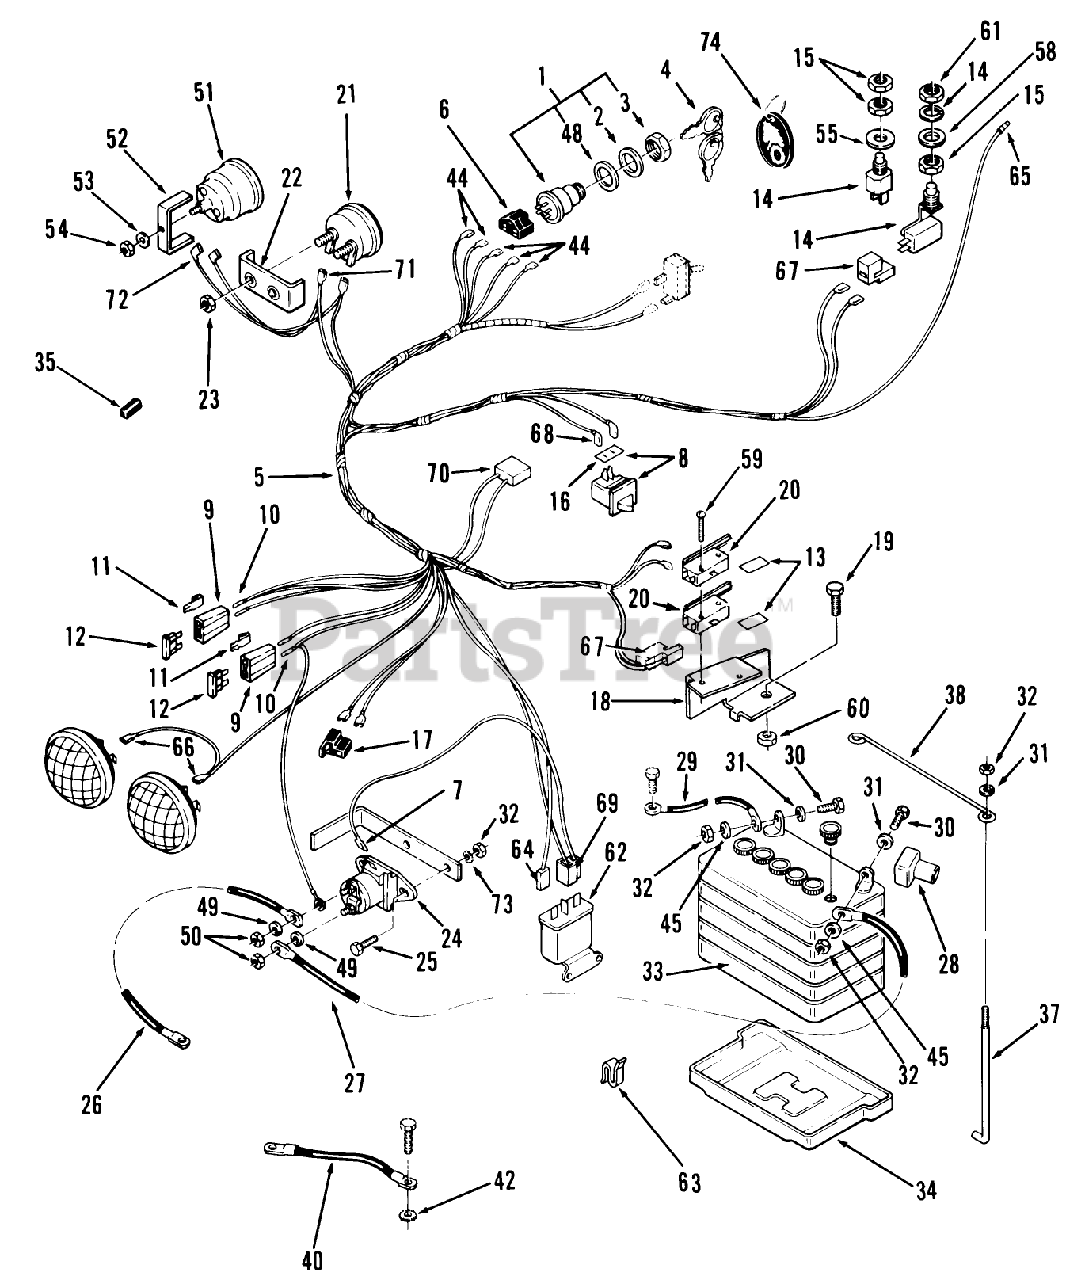 Toro Ignition Switch Wiring Diagram - 2007 Expedition Turn Signal Wiring  Diagram for Wiring Diagram SchematicsWiring Diagram Schematics